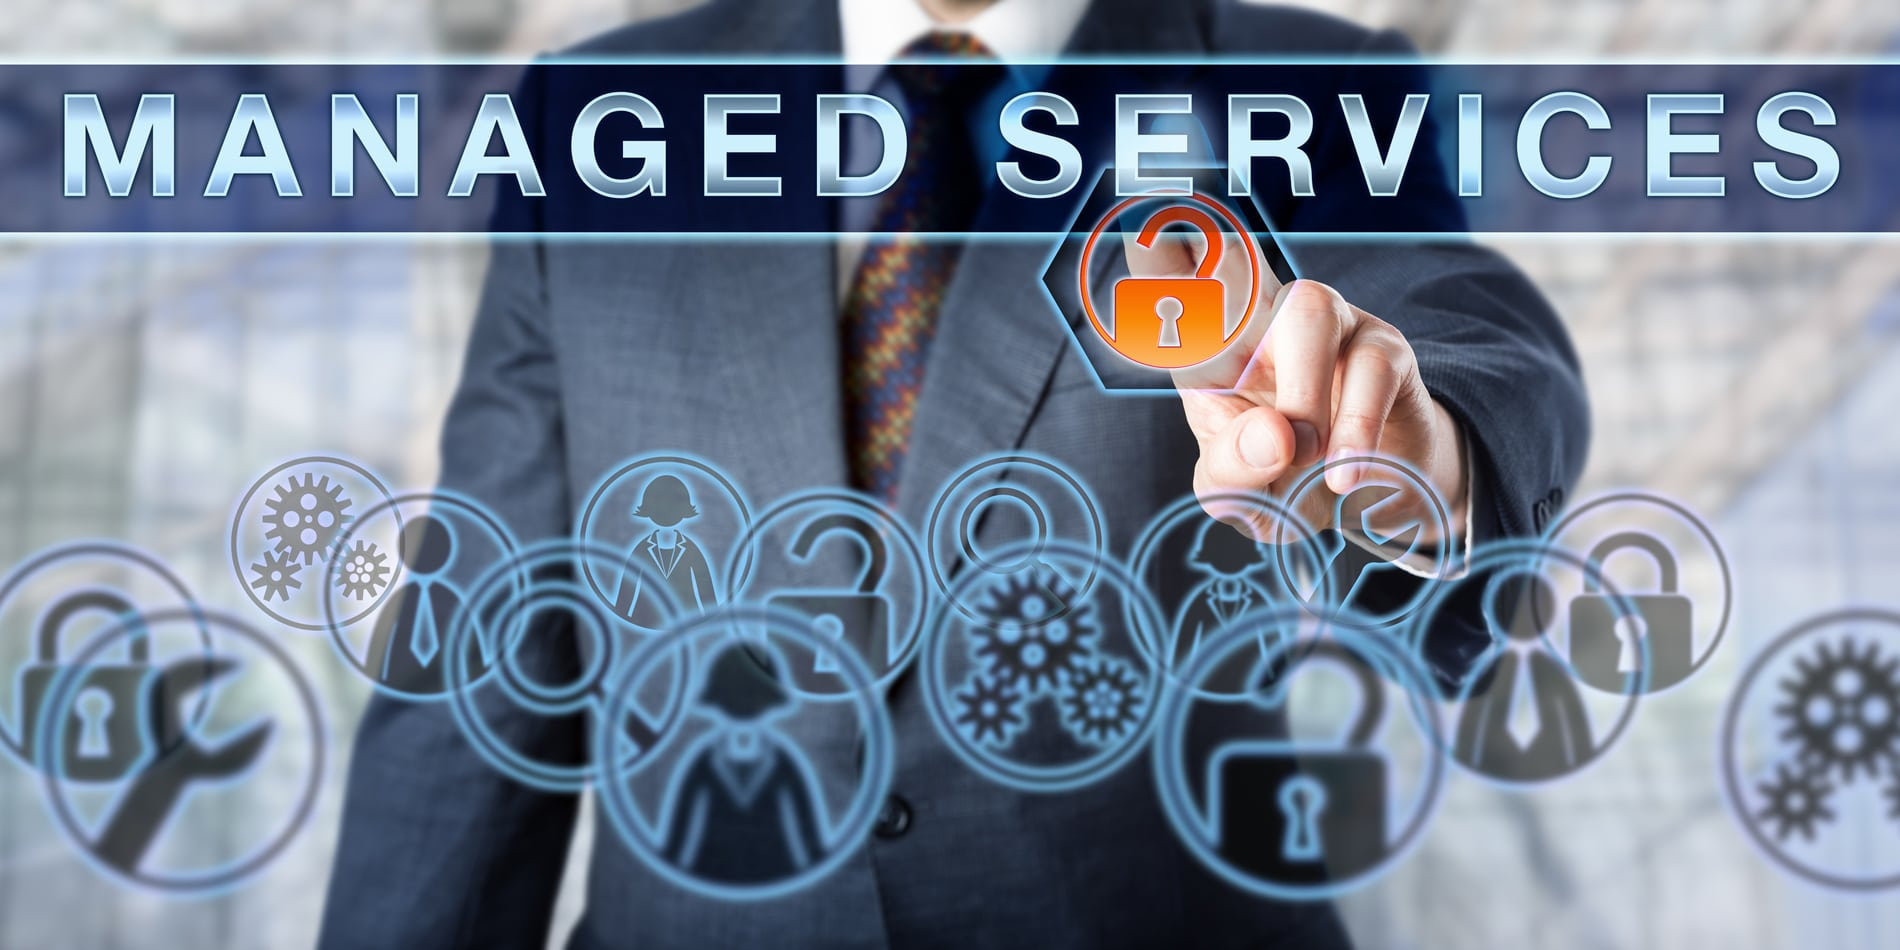 Managed services enters a new era | Federal News Network